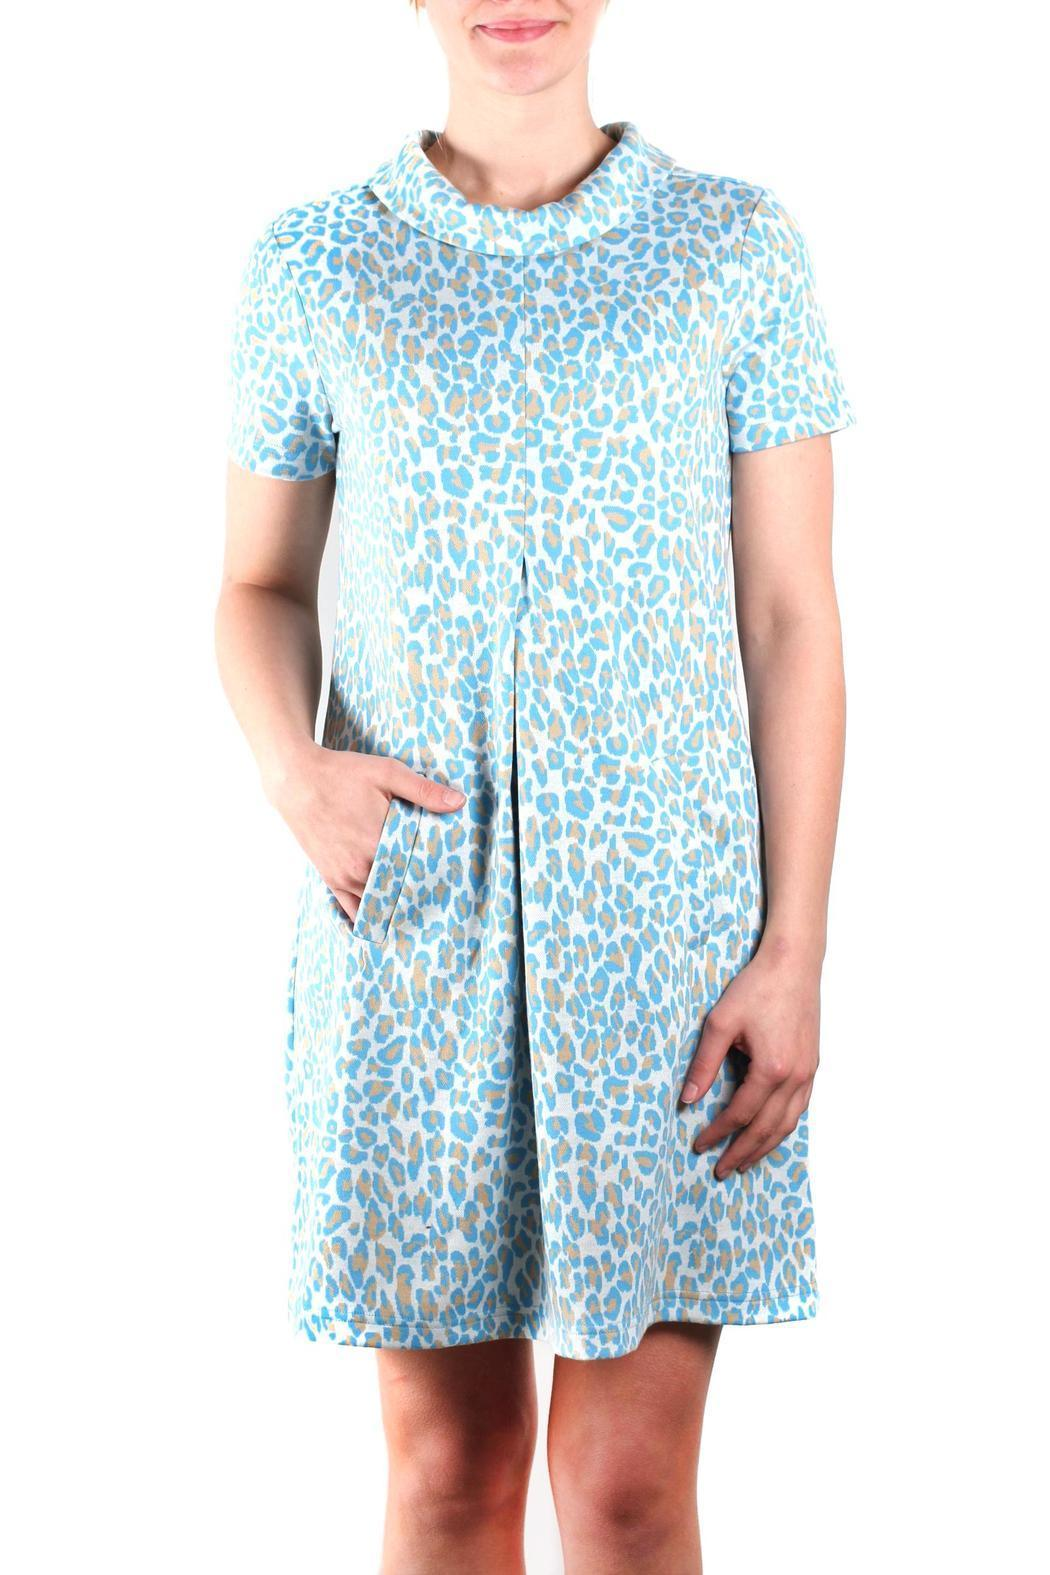 Tyler Boe Kristen Printed Dress from Kentucky by Pappagallo — Shoptiques